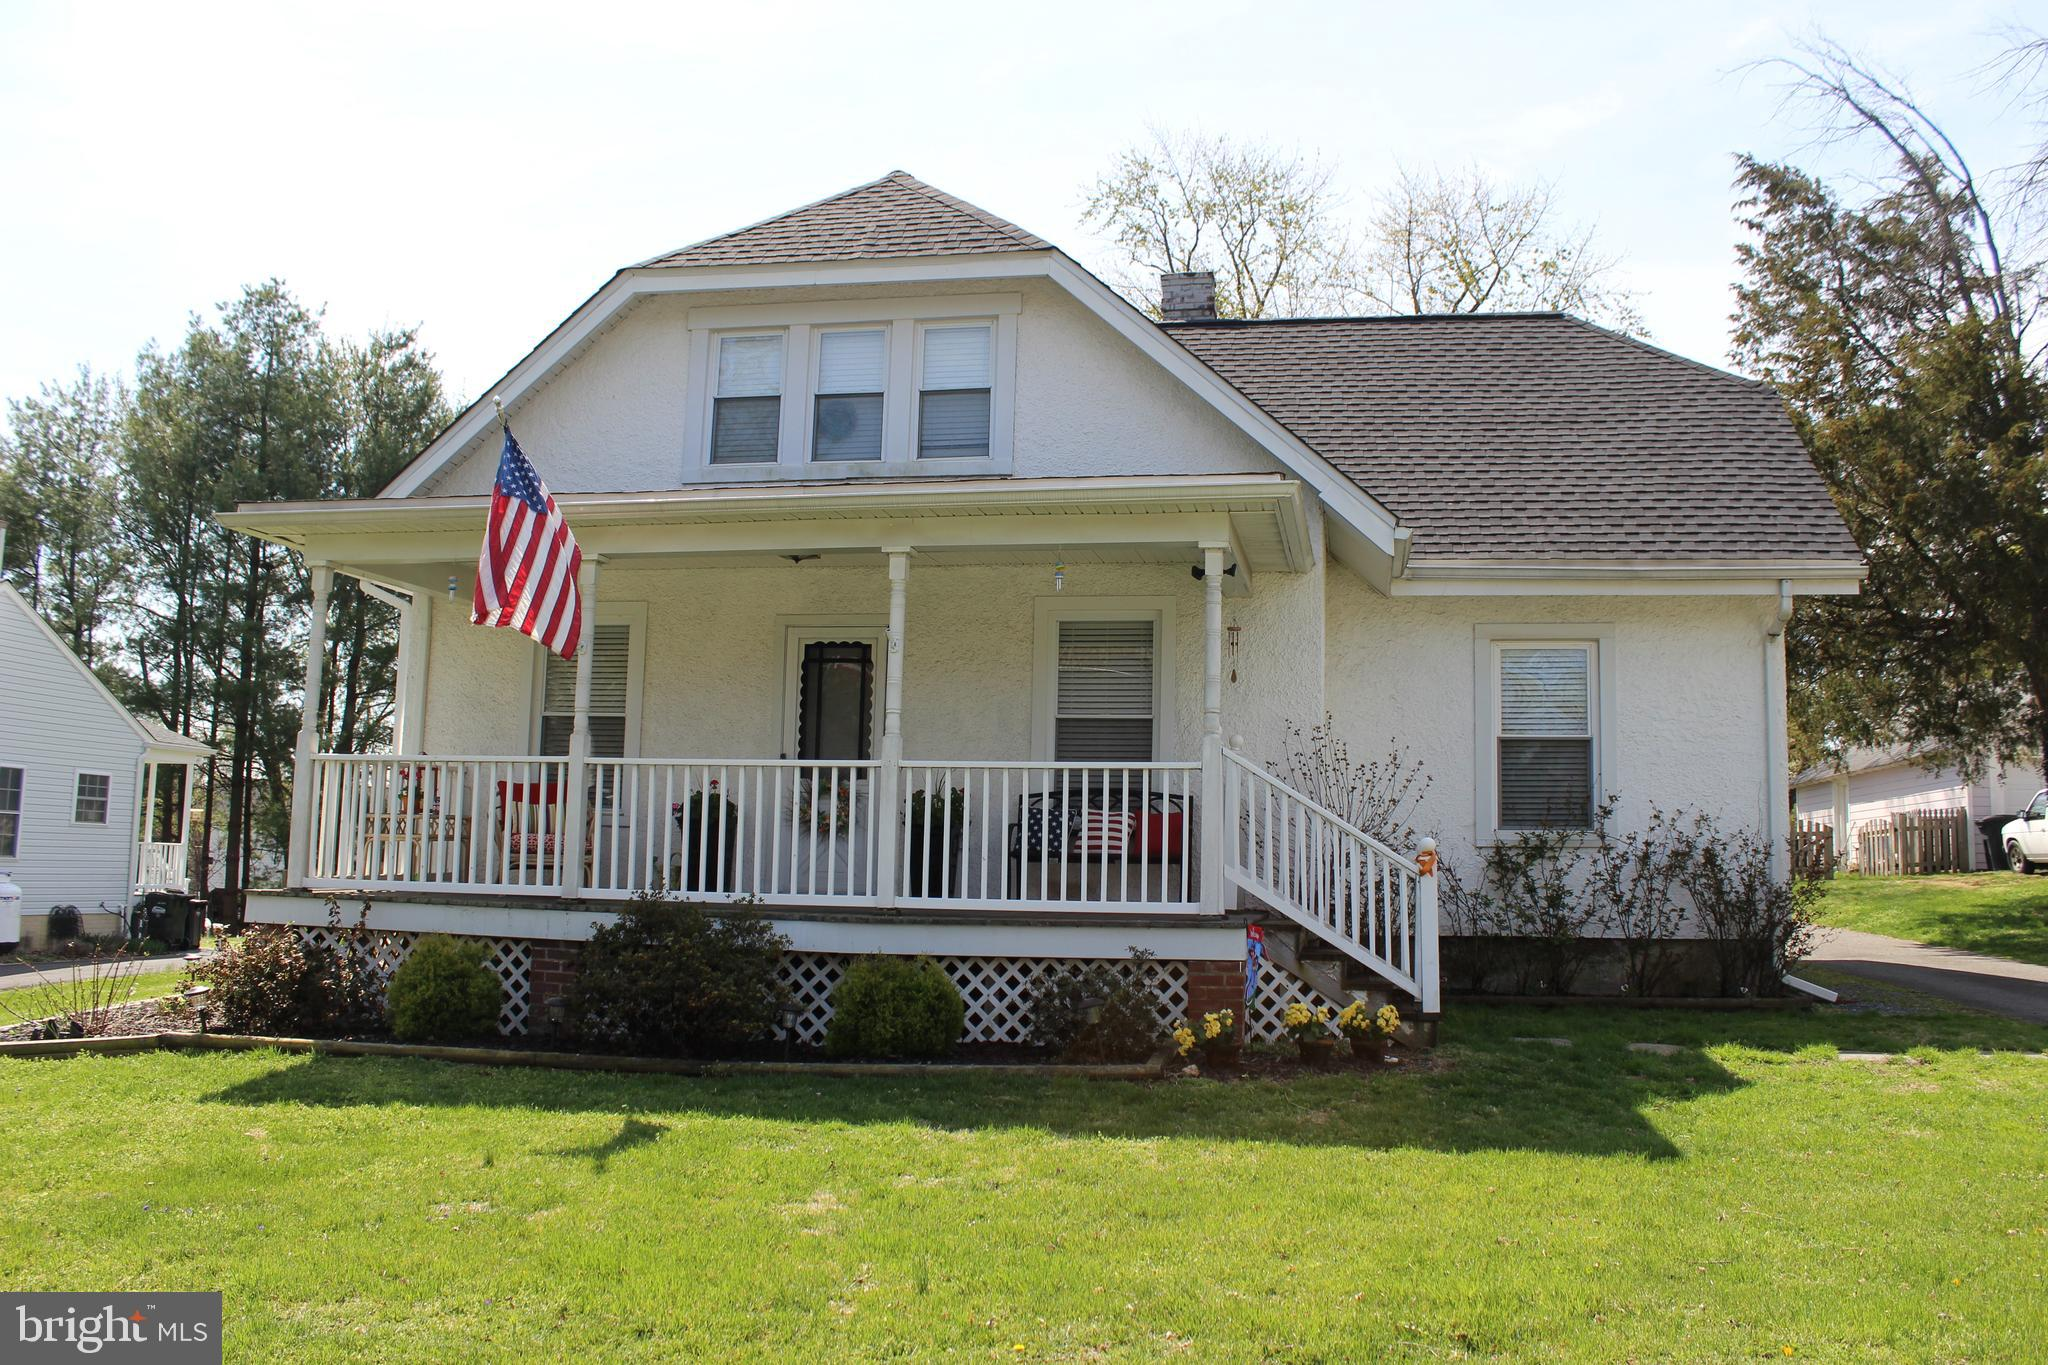 230 W J Street, Purcellville, VA 20132 - SOLD LISTING, MLS # VALO380466 |  RE/MAX of Reading